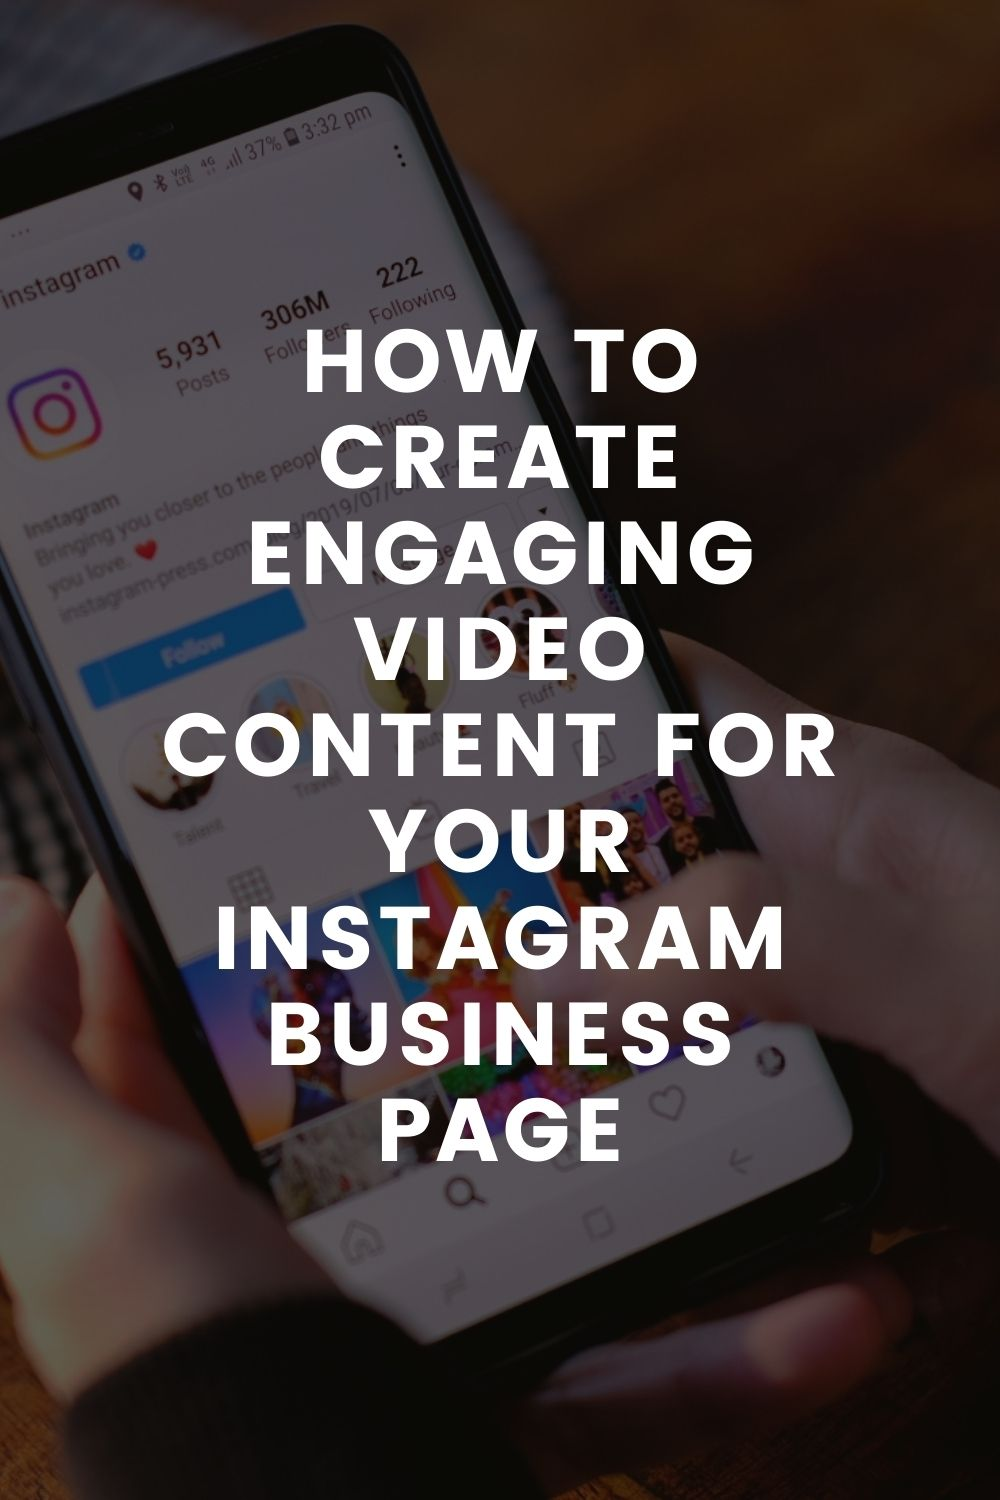 How to Create Engaging Video Content for Your Instagram Business Page